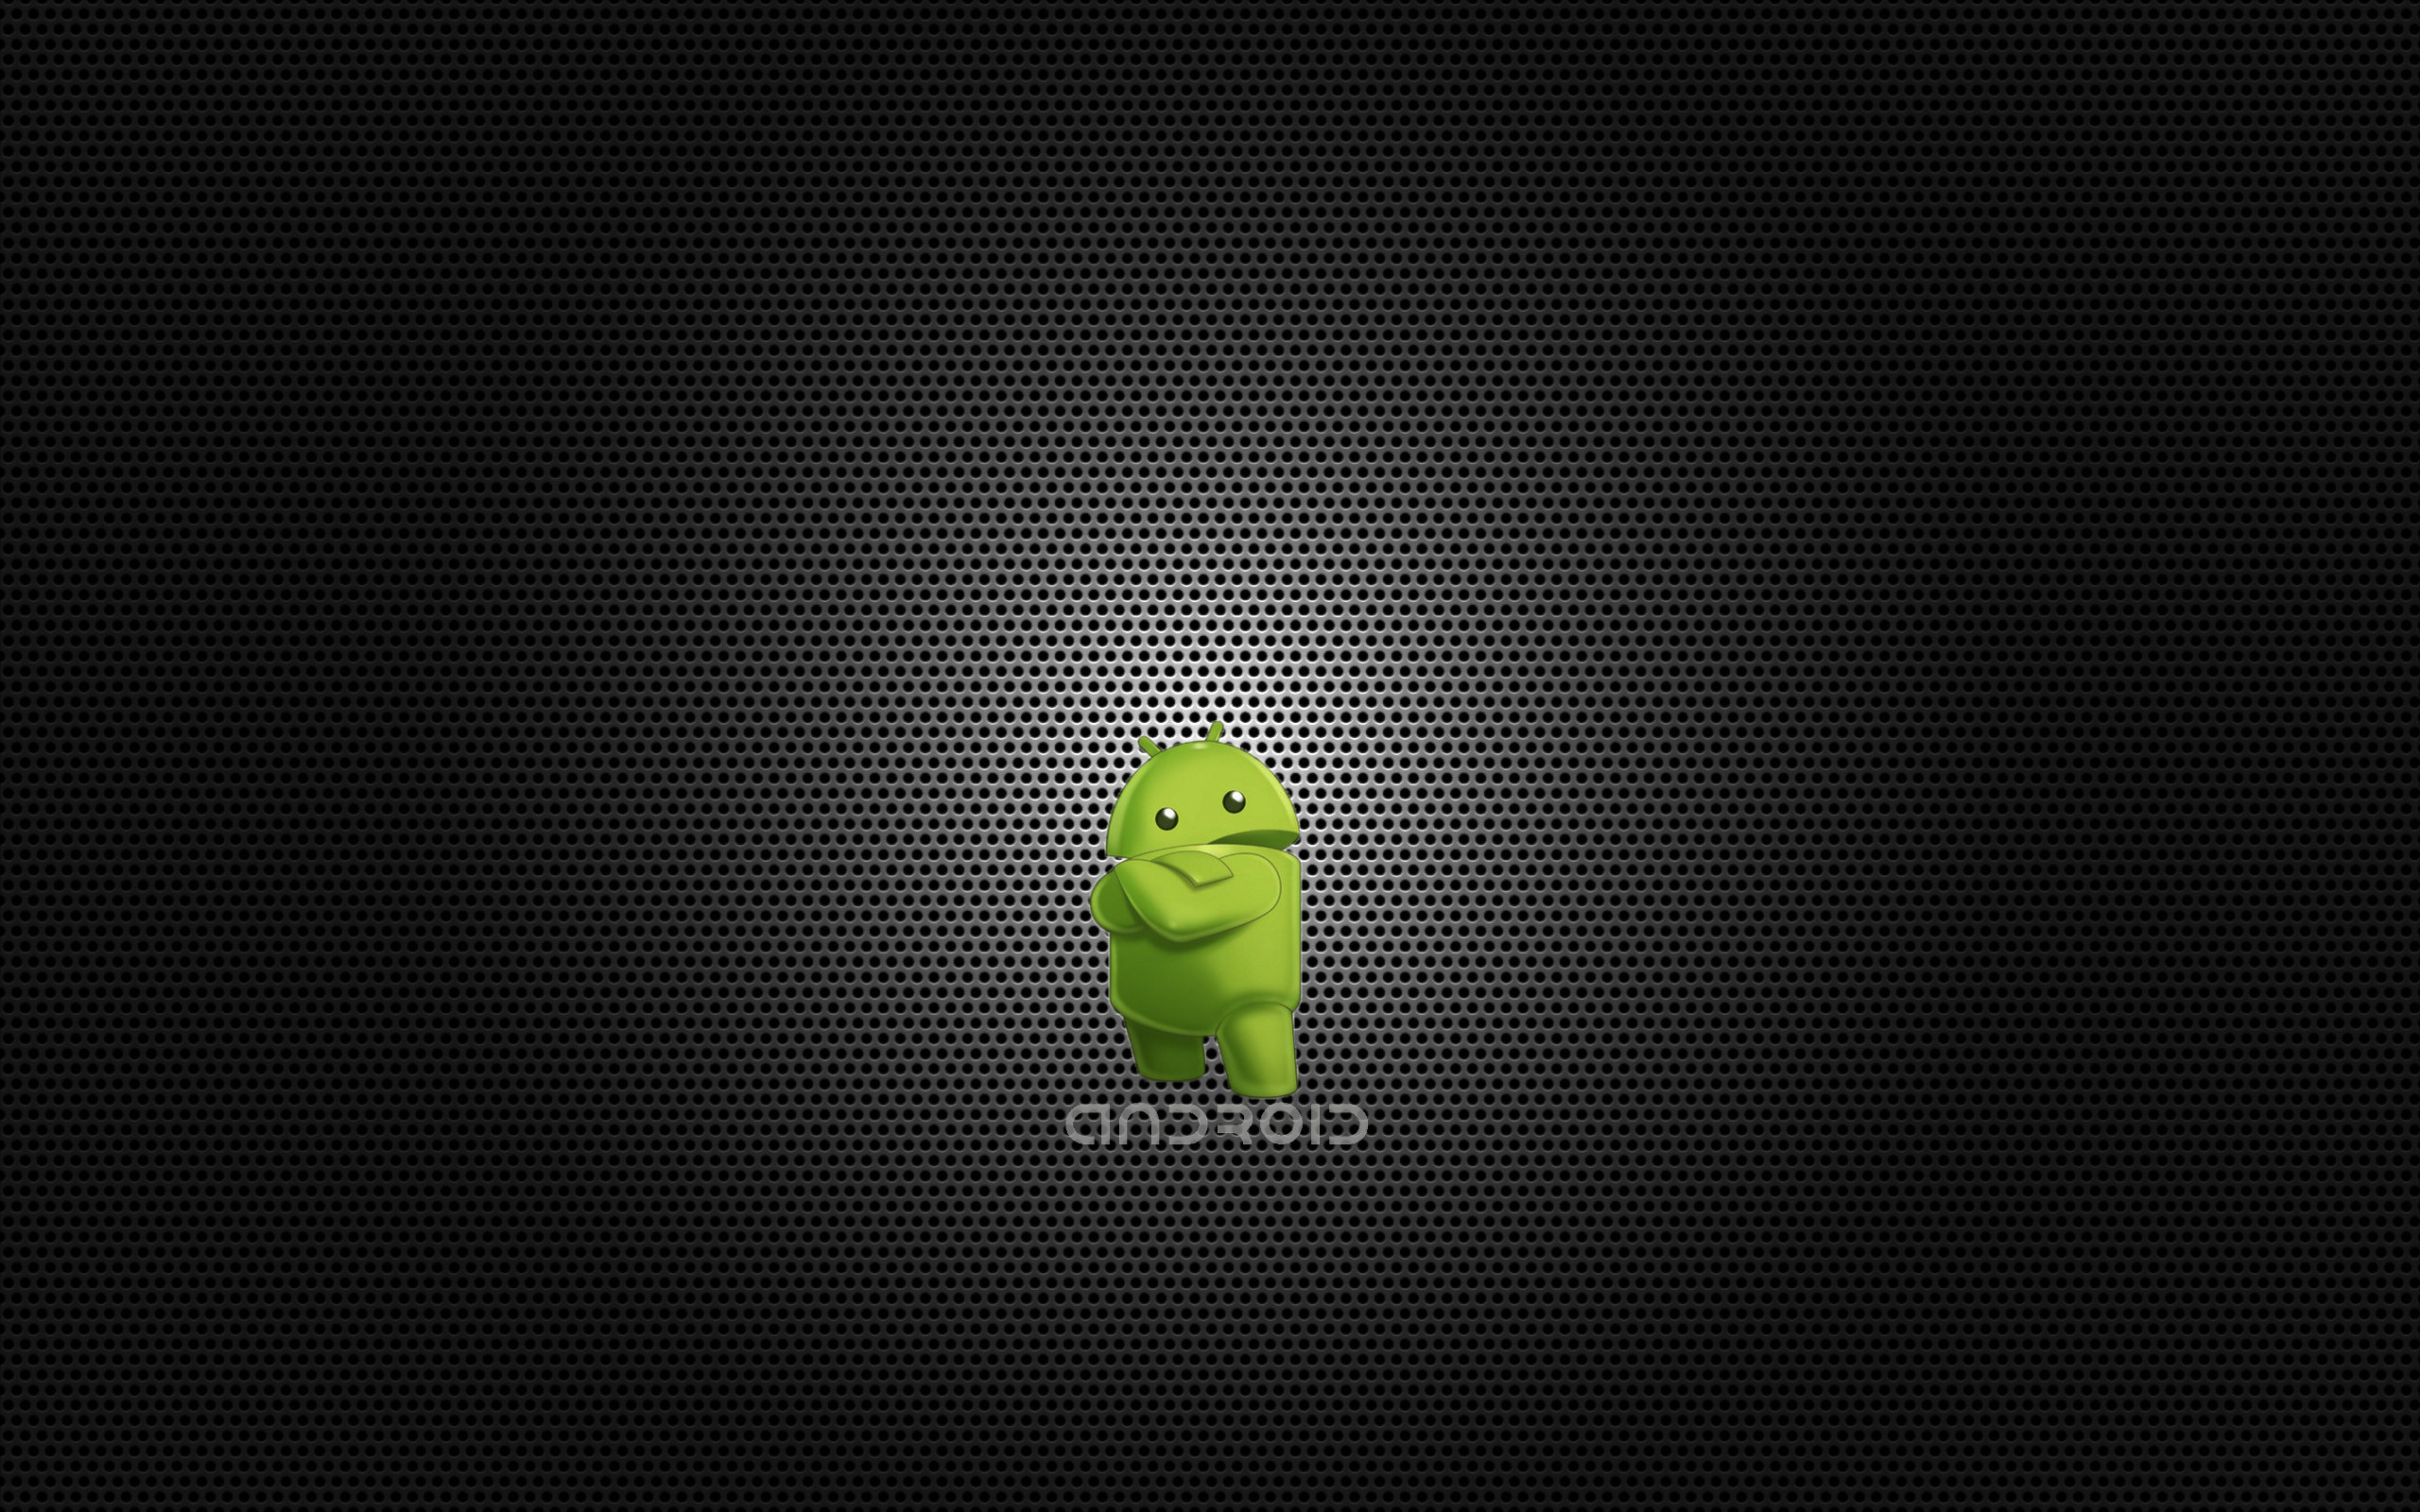 Custom iPhone 5 background | Personal Design Projects | Pinterest .